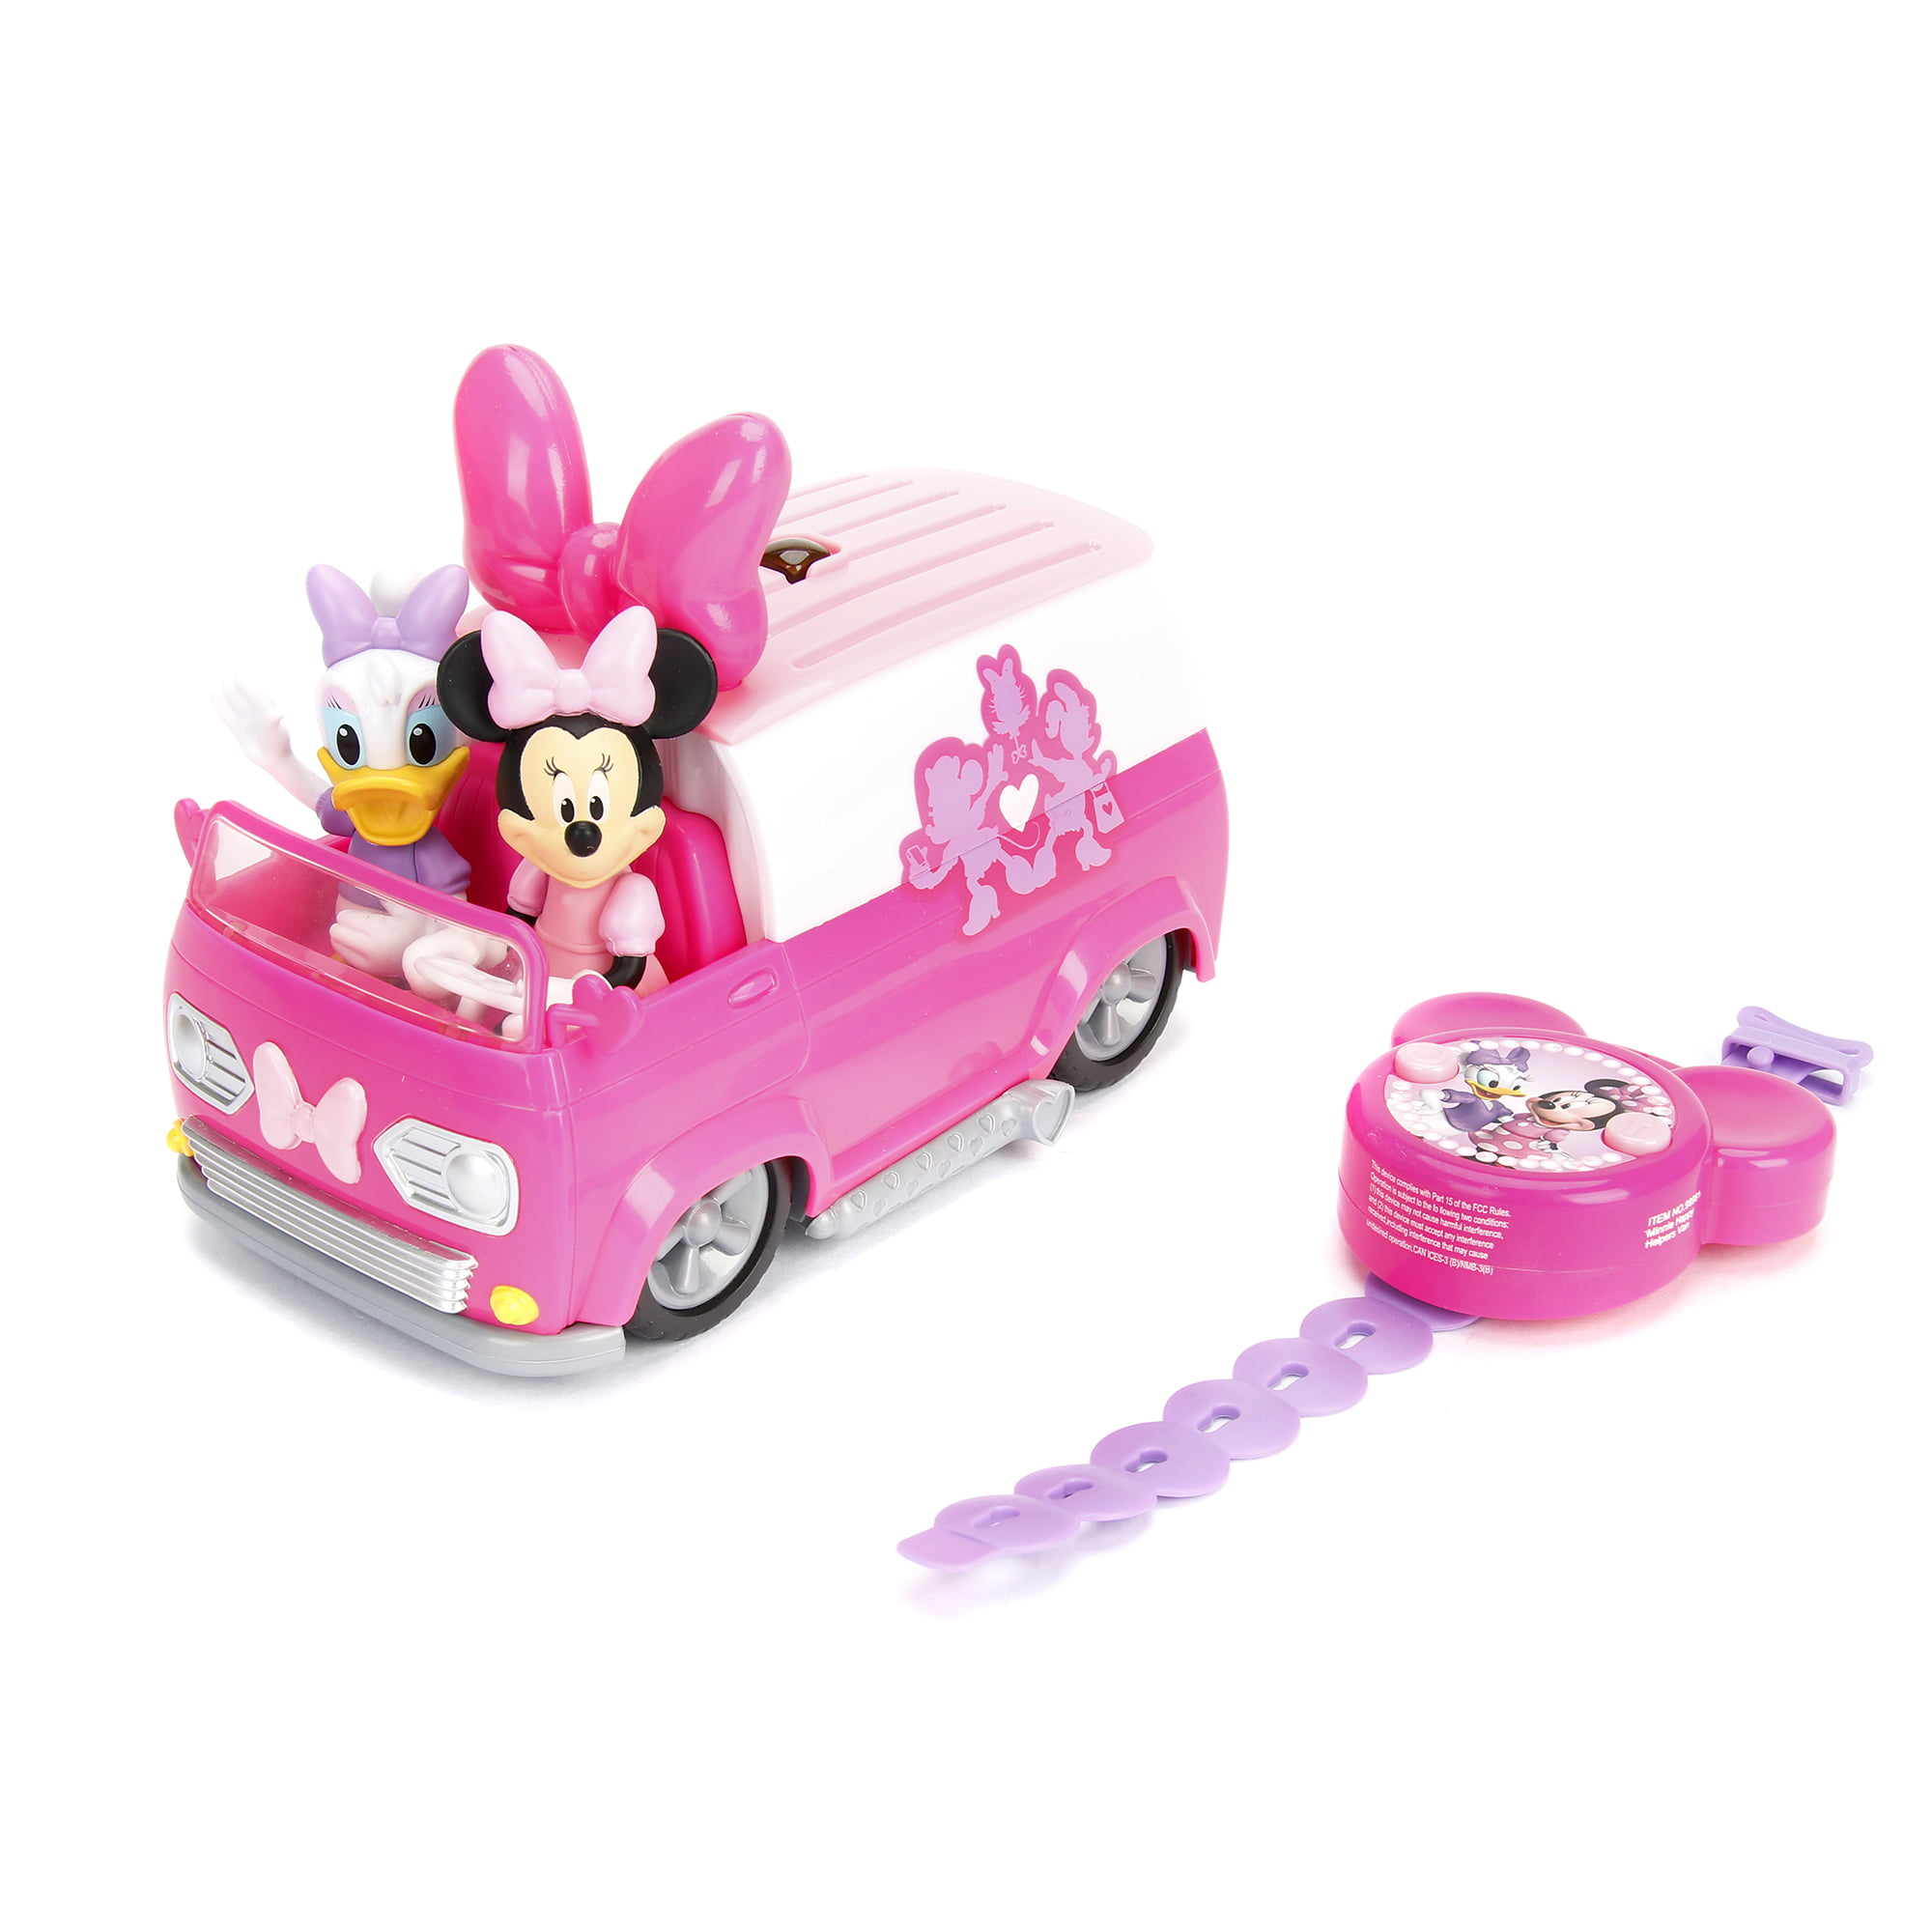 Jada Toys Remote Control Minnie Mouse Van by Jada Toys